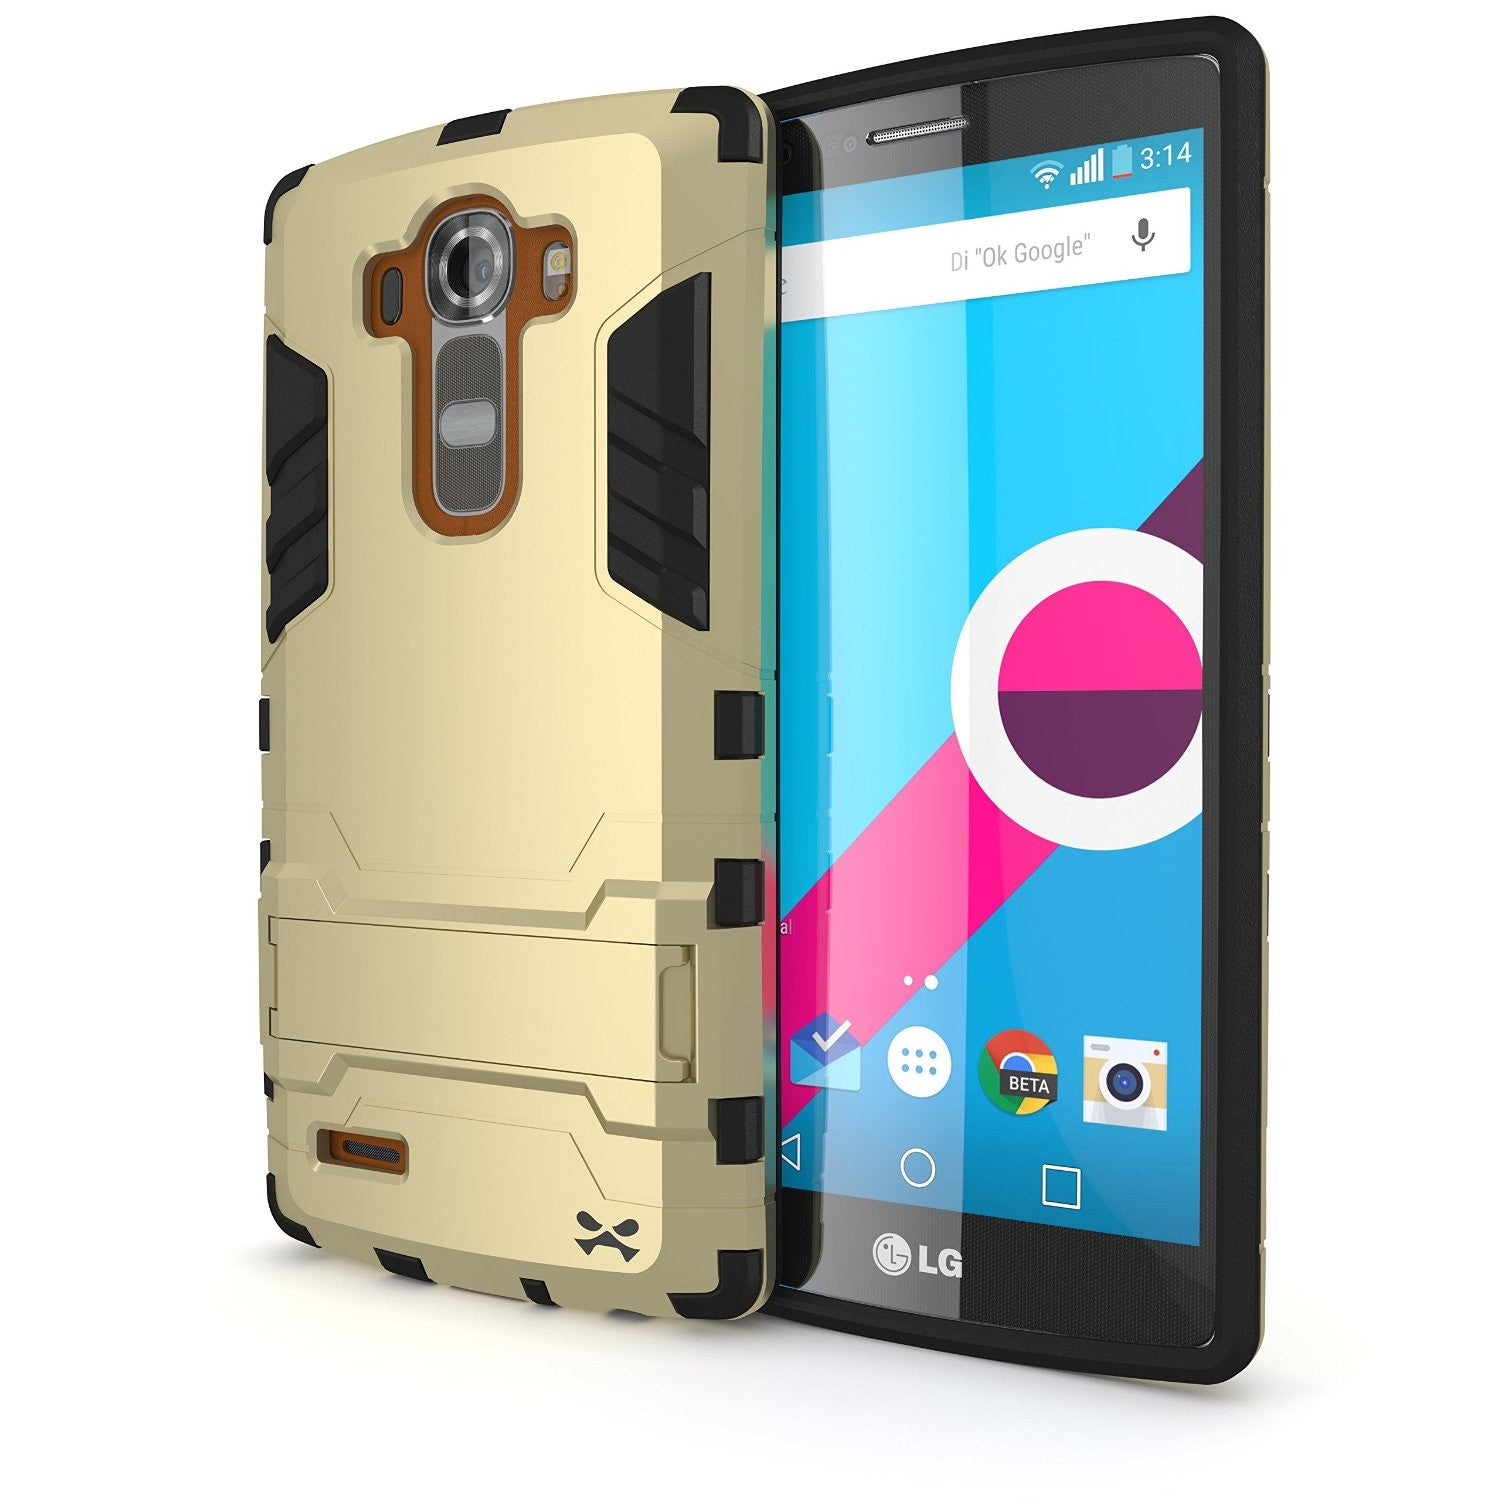 LG G4 Case Ghostek Armadillo 2.0 Gold w/ Tempered Glass Screen Protector | Slim Armor | Kickstand